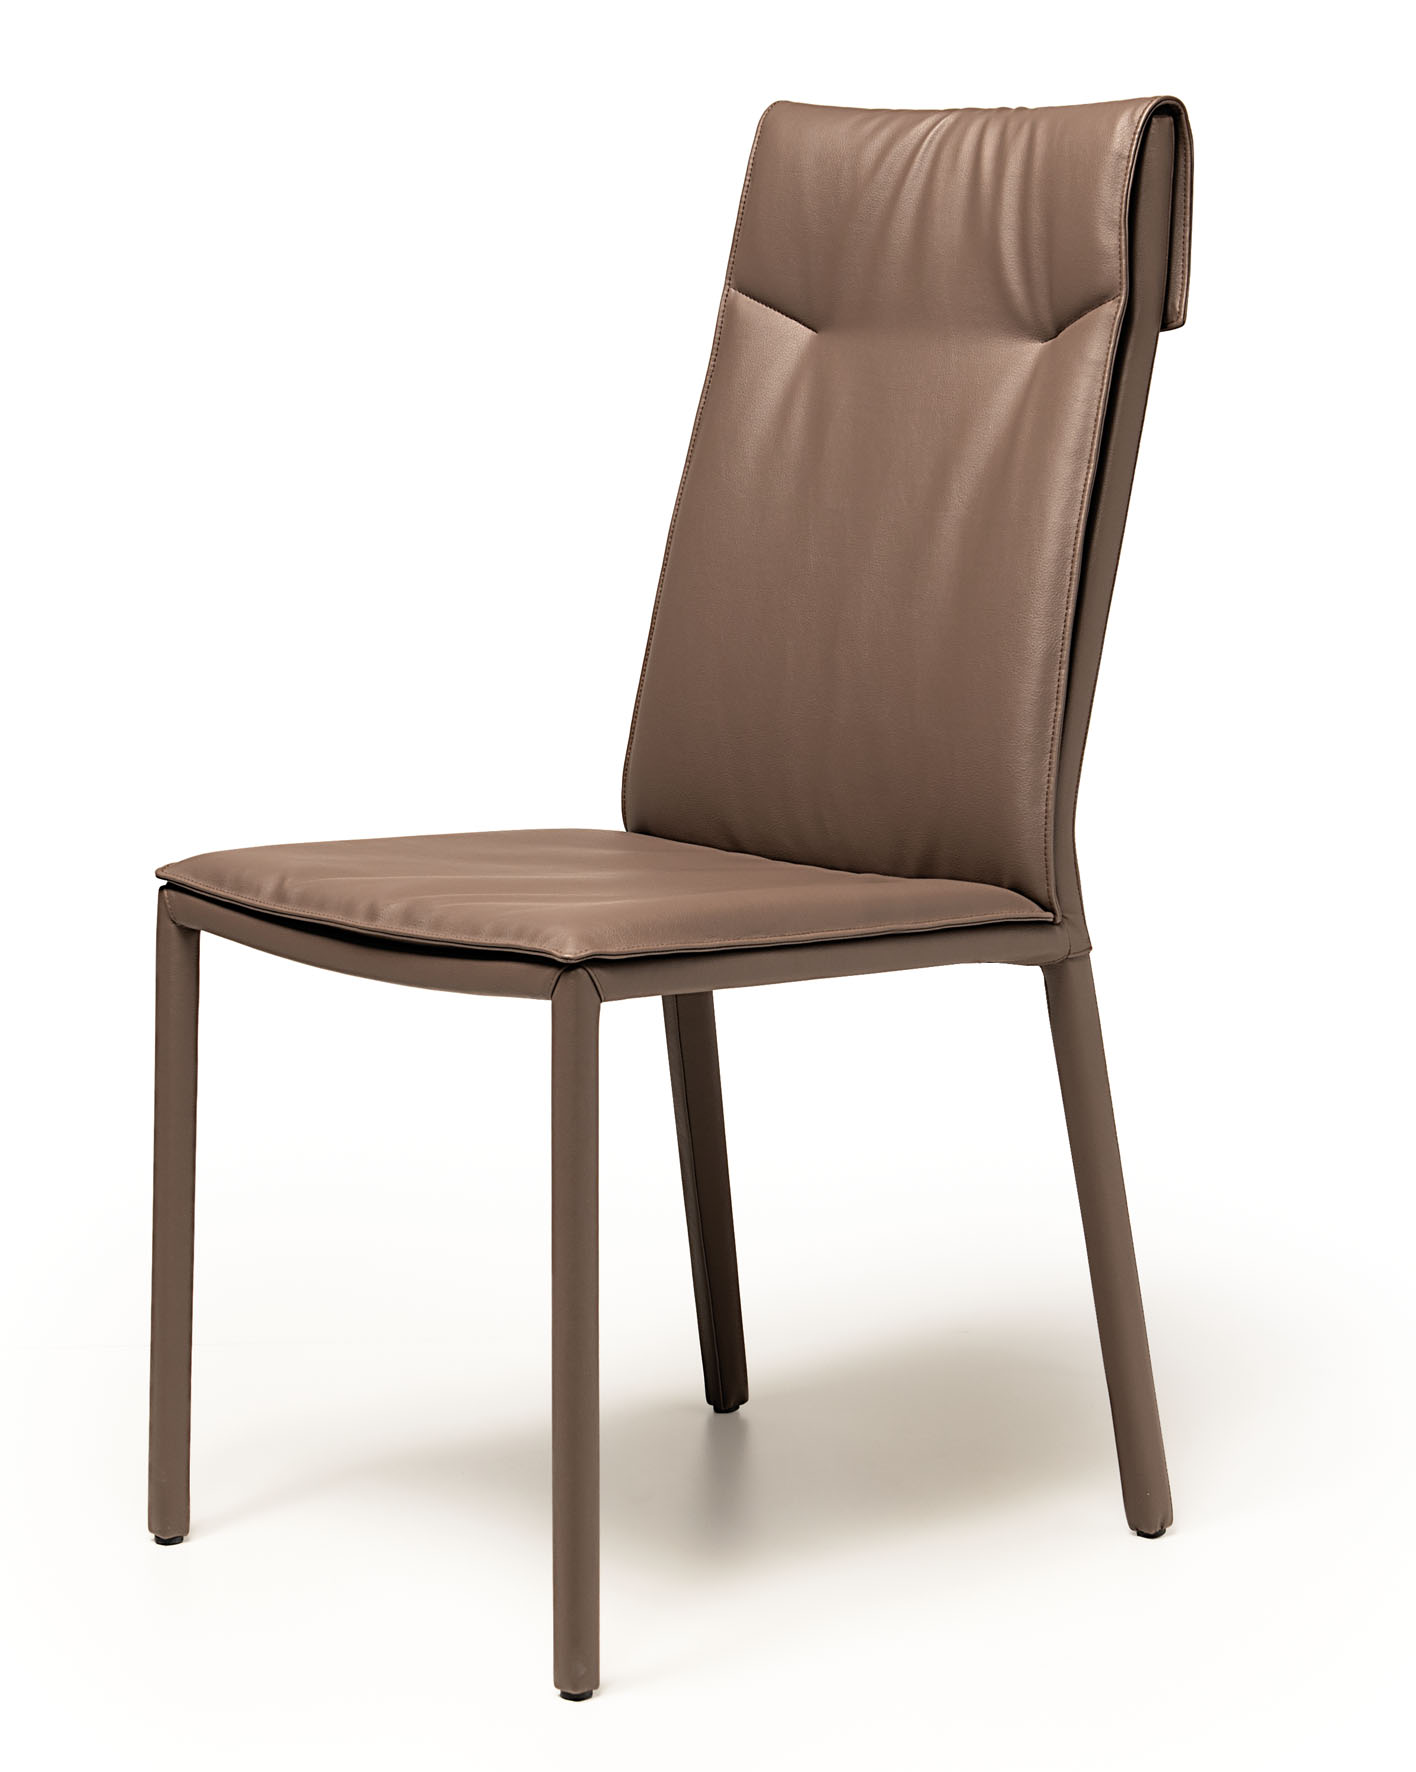 dining chair covers in india eiffel oak legs contemporary italian isabel designer